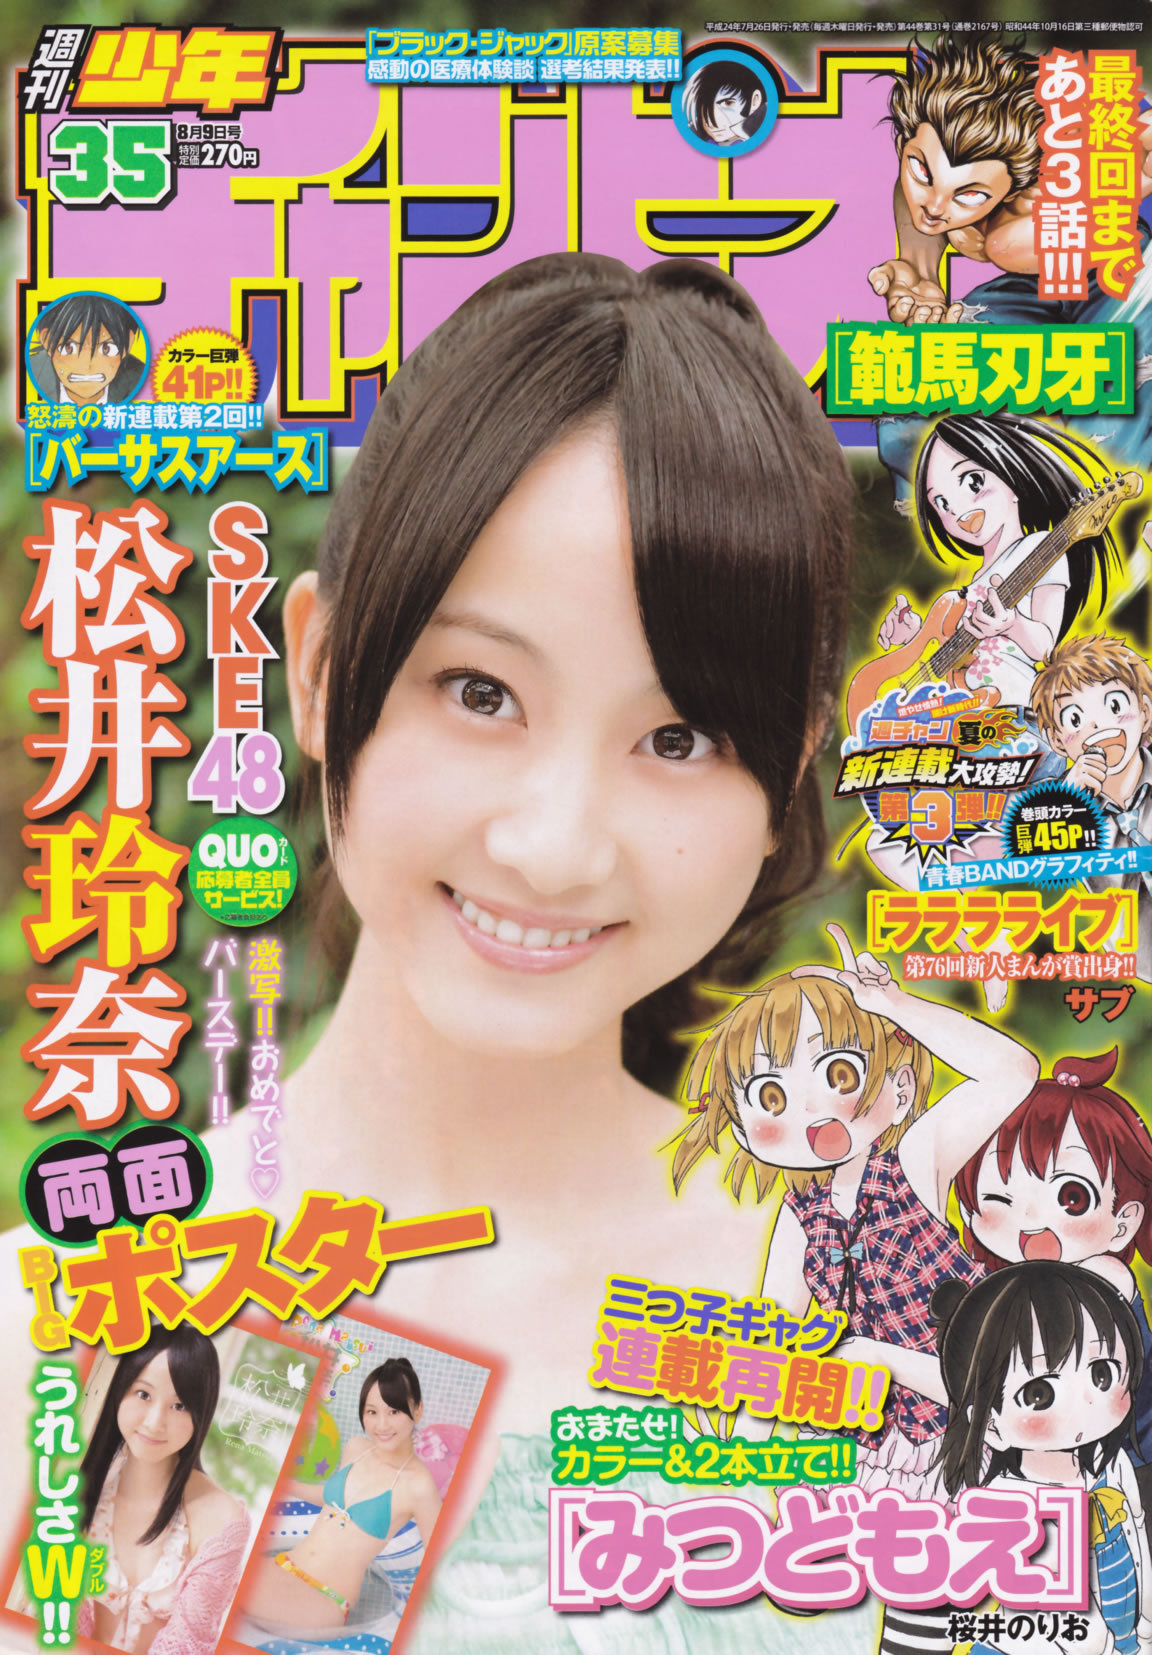 thestage48:  Weekly Shonen Champion No.35 2012.08.09